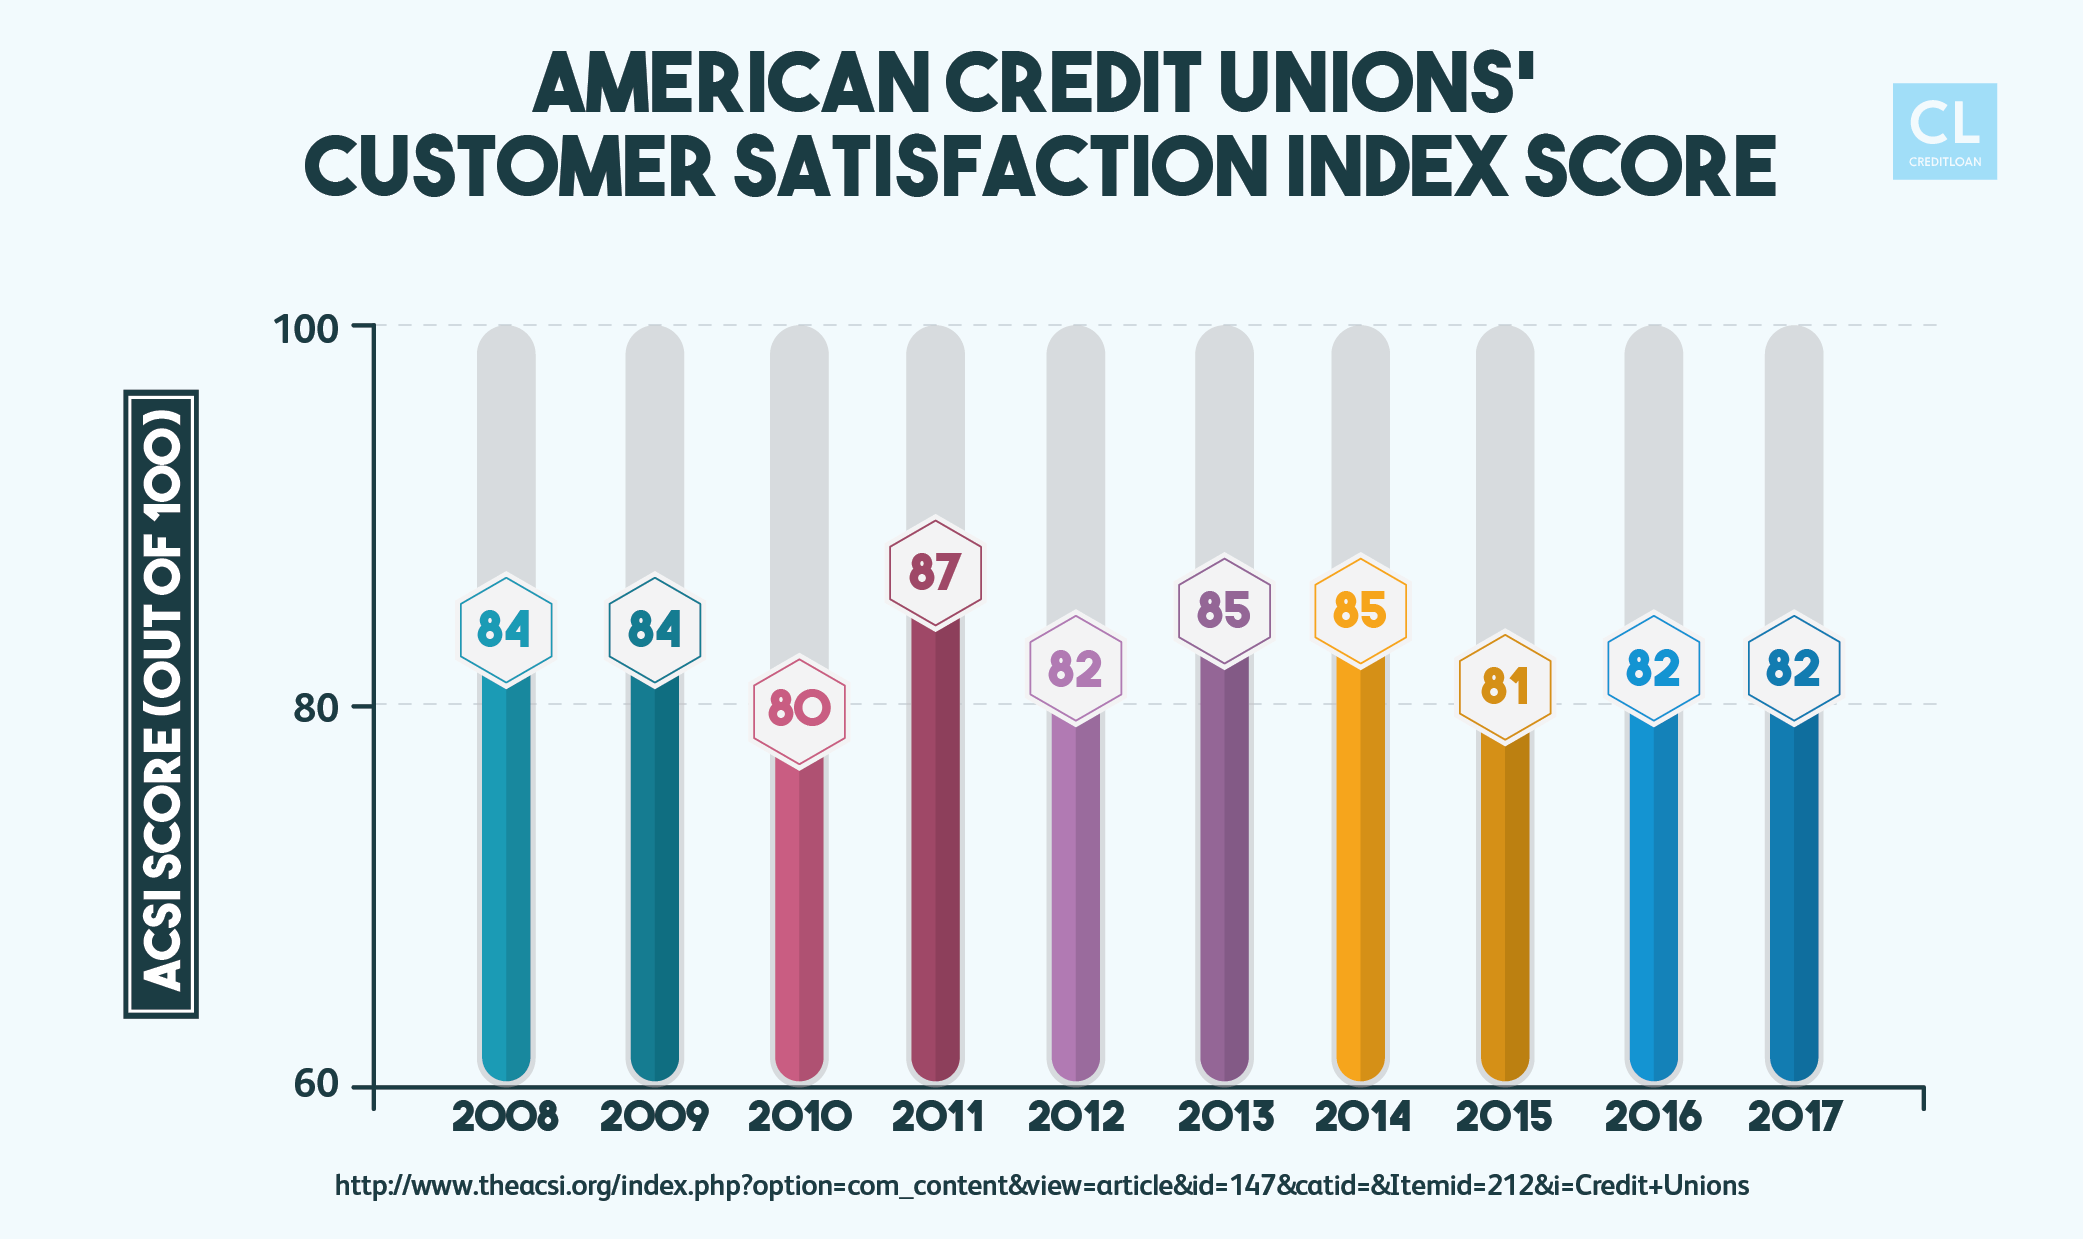 American Credit Unions Customer Satisfaction Index Score